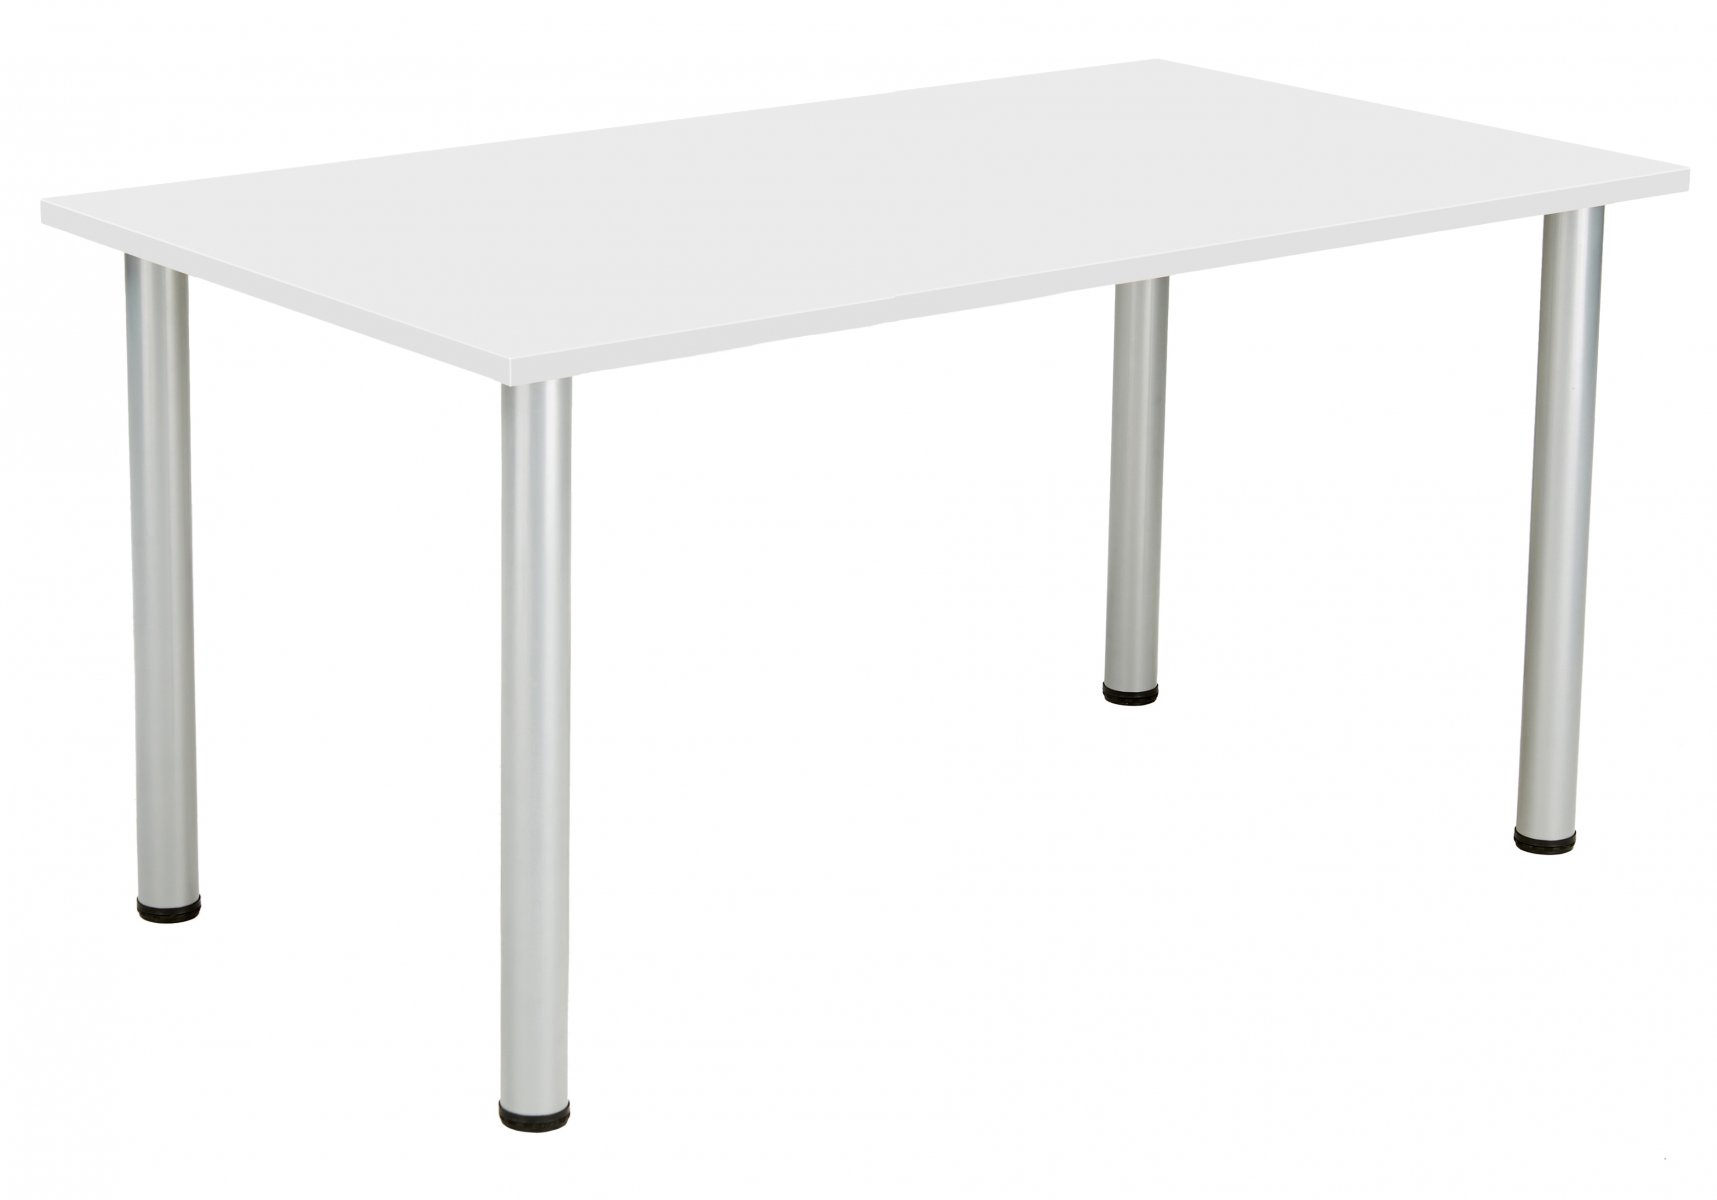 Fraction Plus Rectangular 140 Meeting Table - White